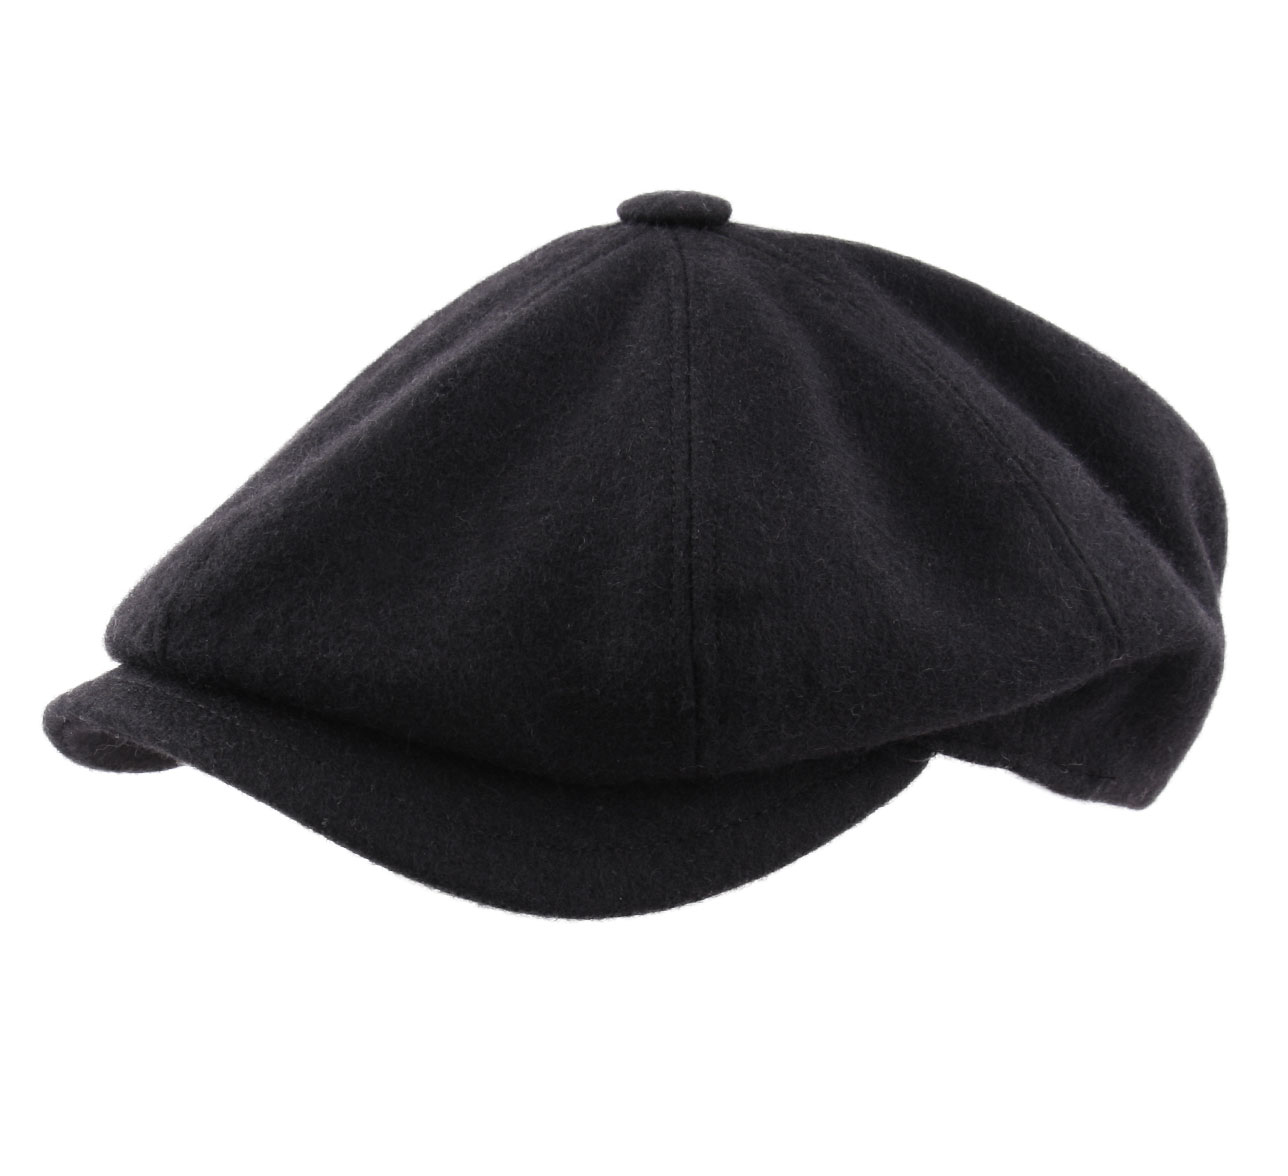 casquette homme italienne